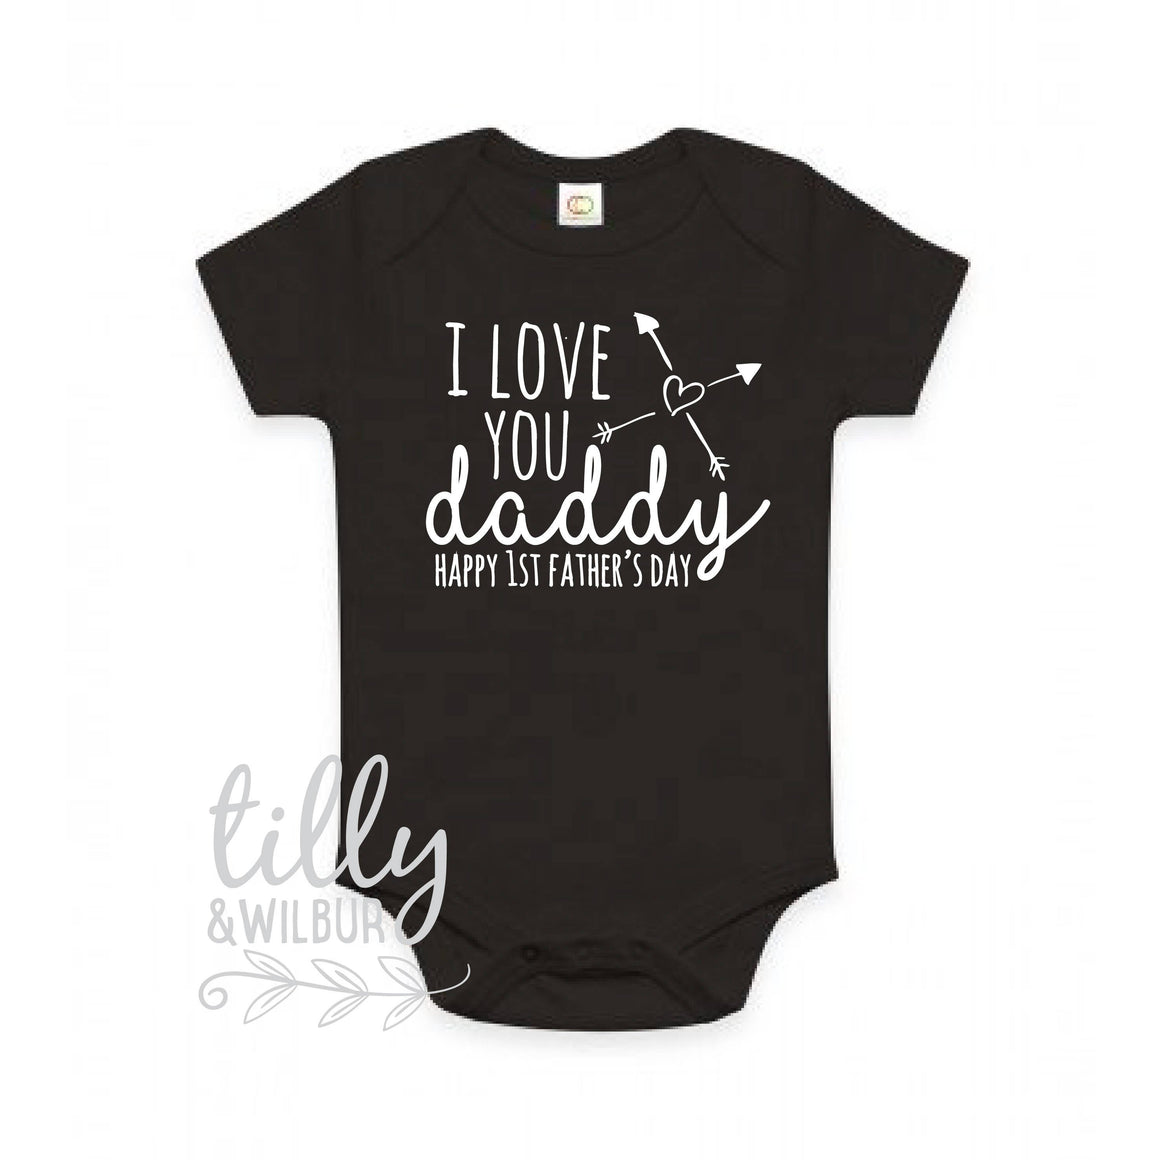 I Love You Daddy Happy 1st Father's Day, Father's Day Bodysuit, Father's Day Baby Outfit, First Fathers Day Baby Gift, Daddy, U-BK-BS